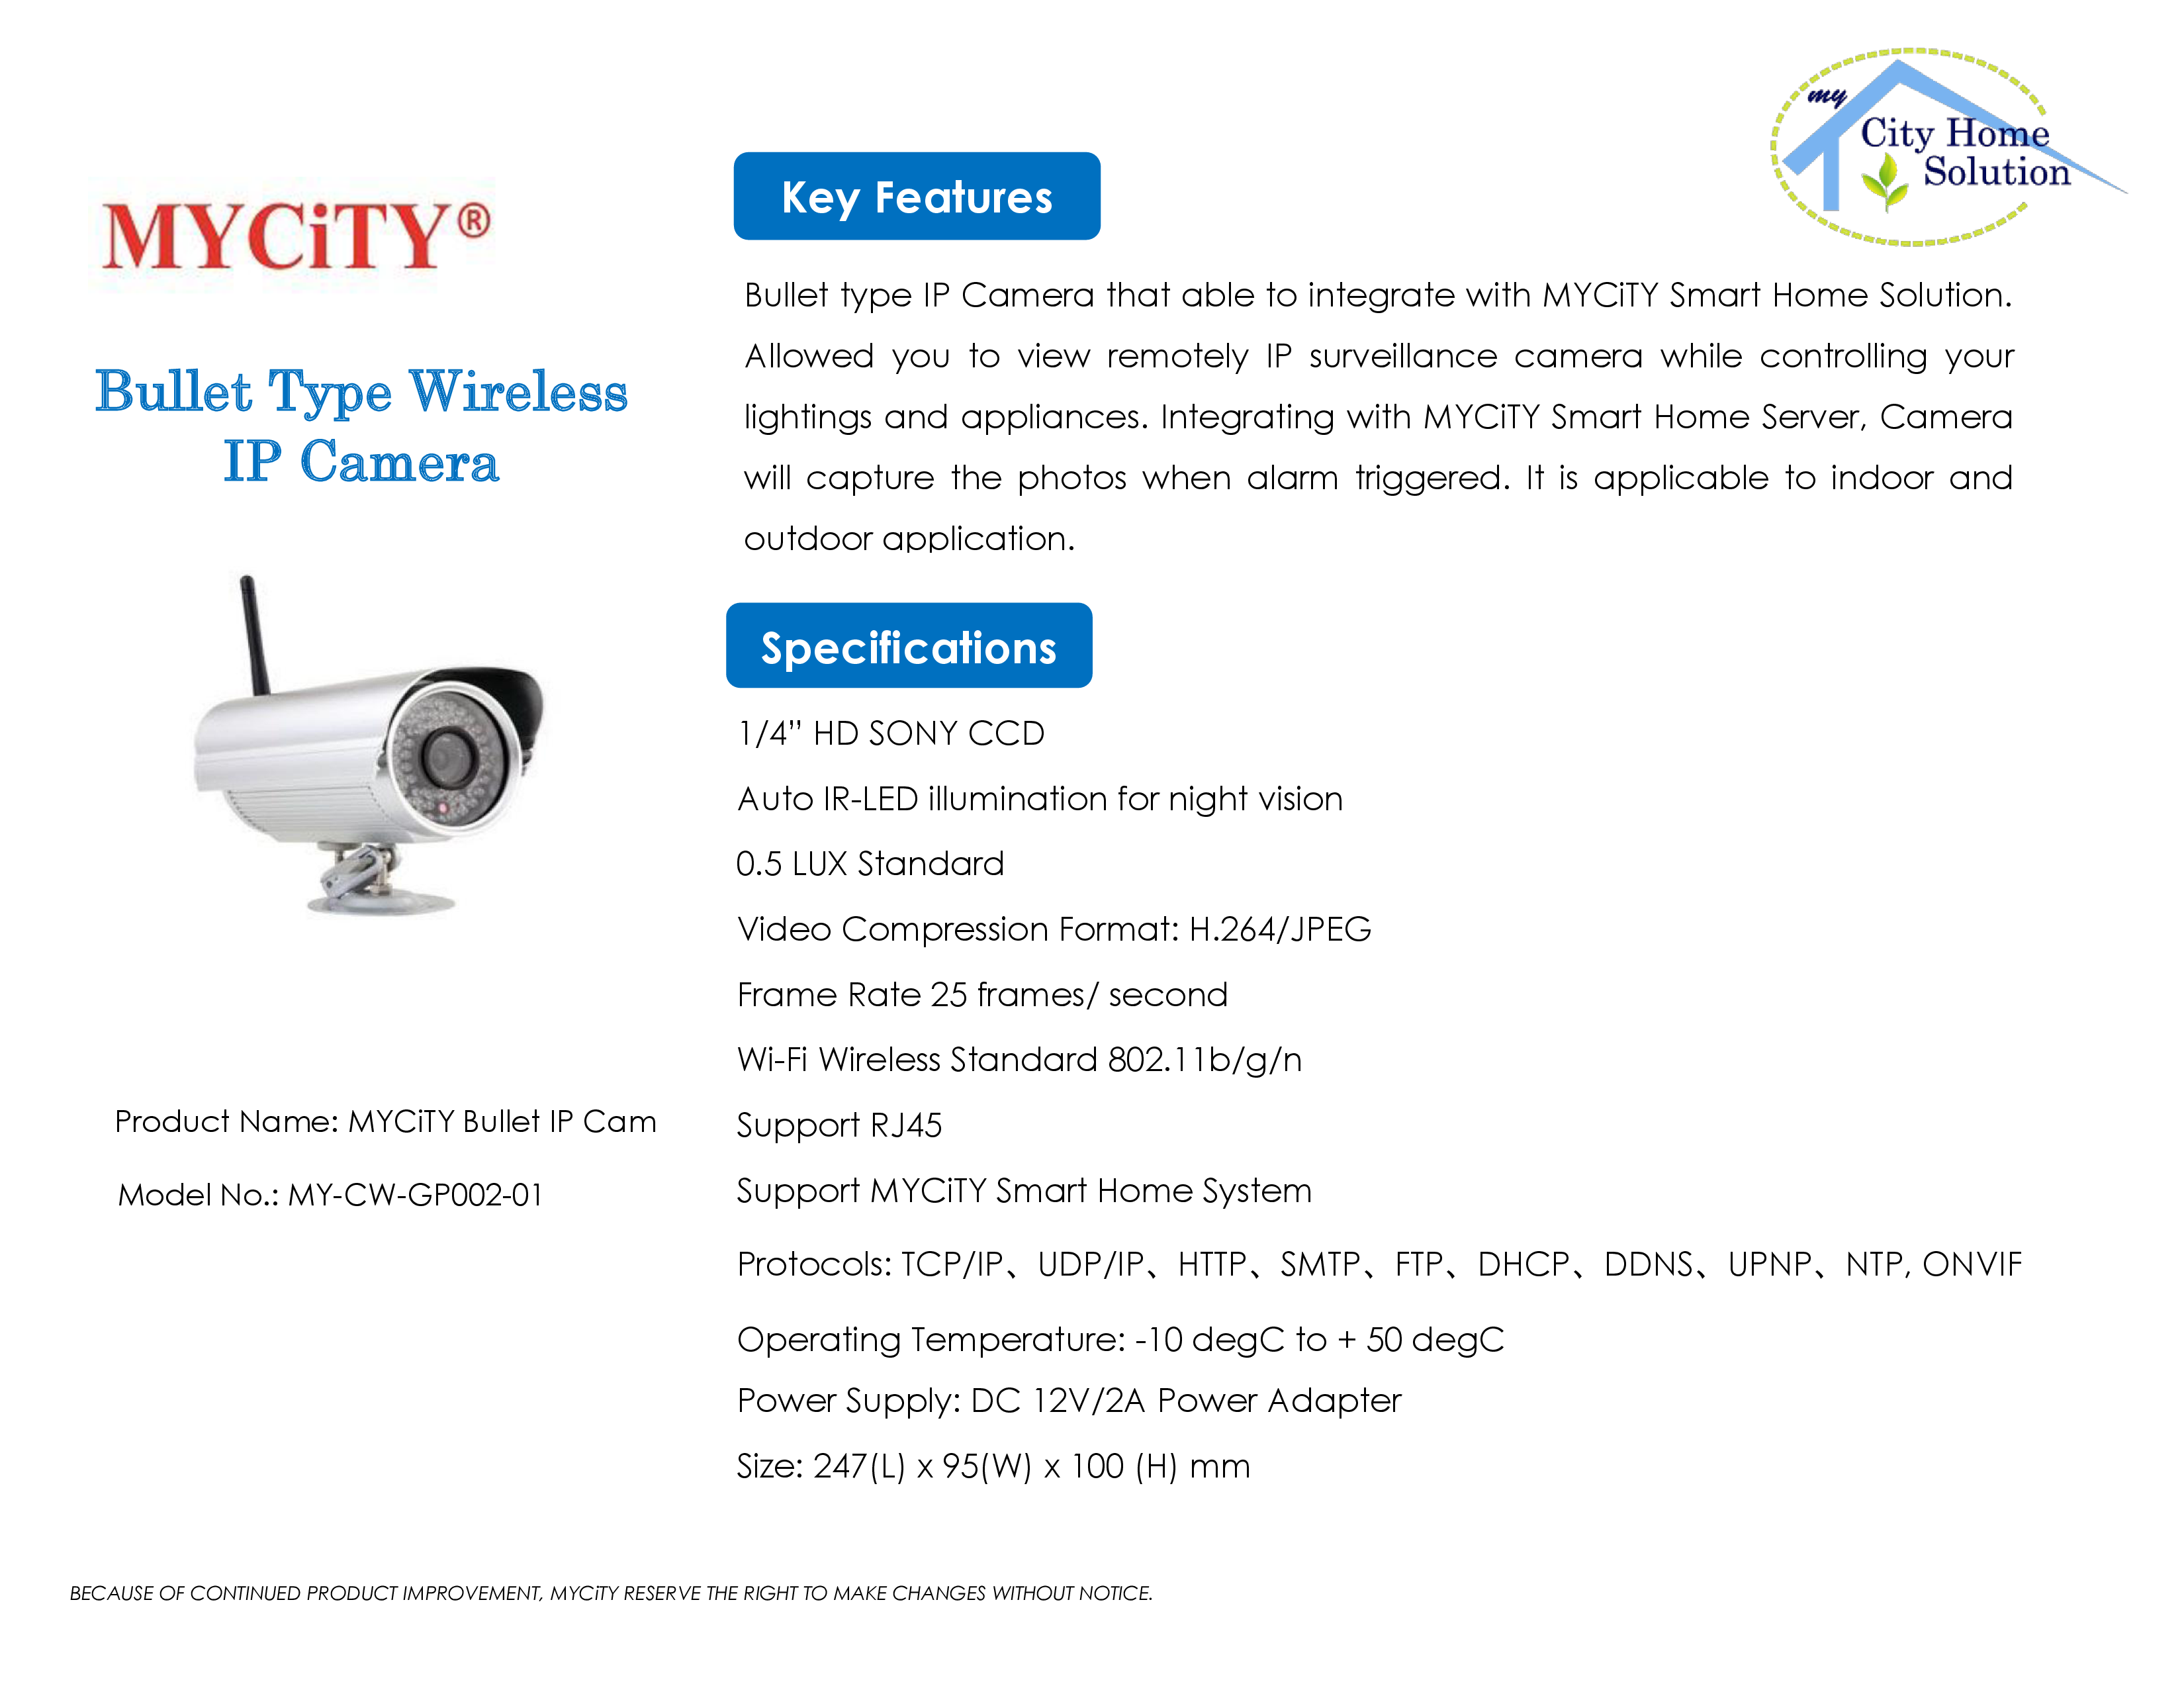 MYCiTY Bullet IP Camera rev0.4 FINAL